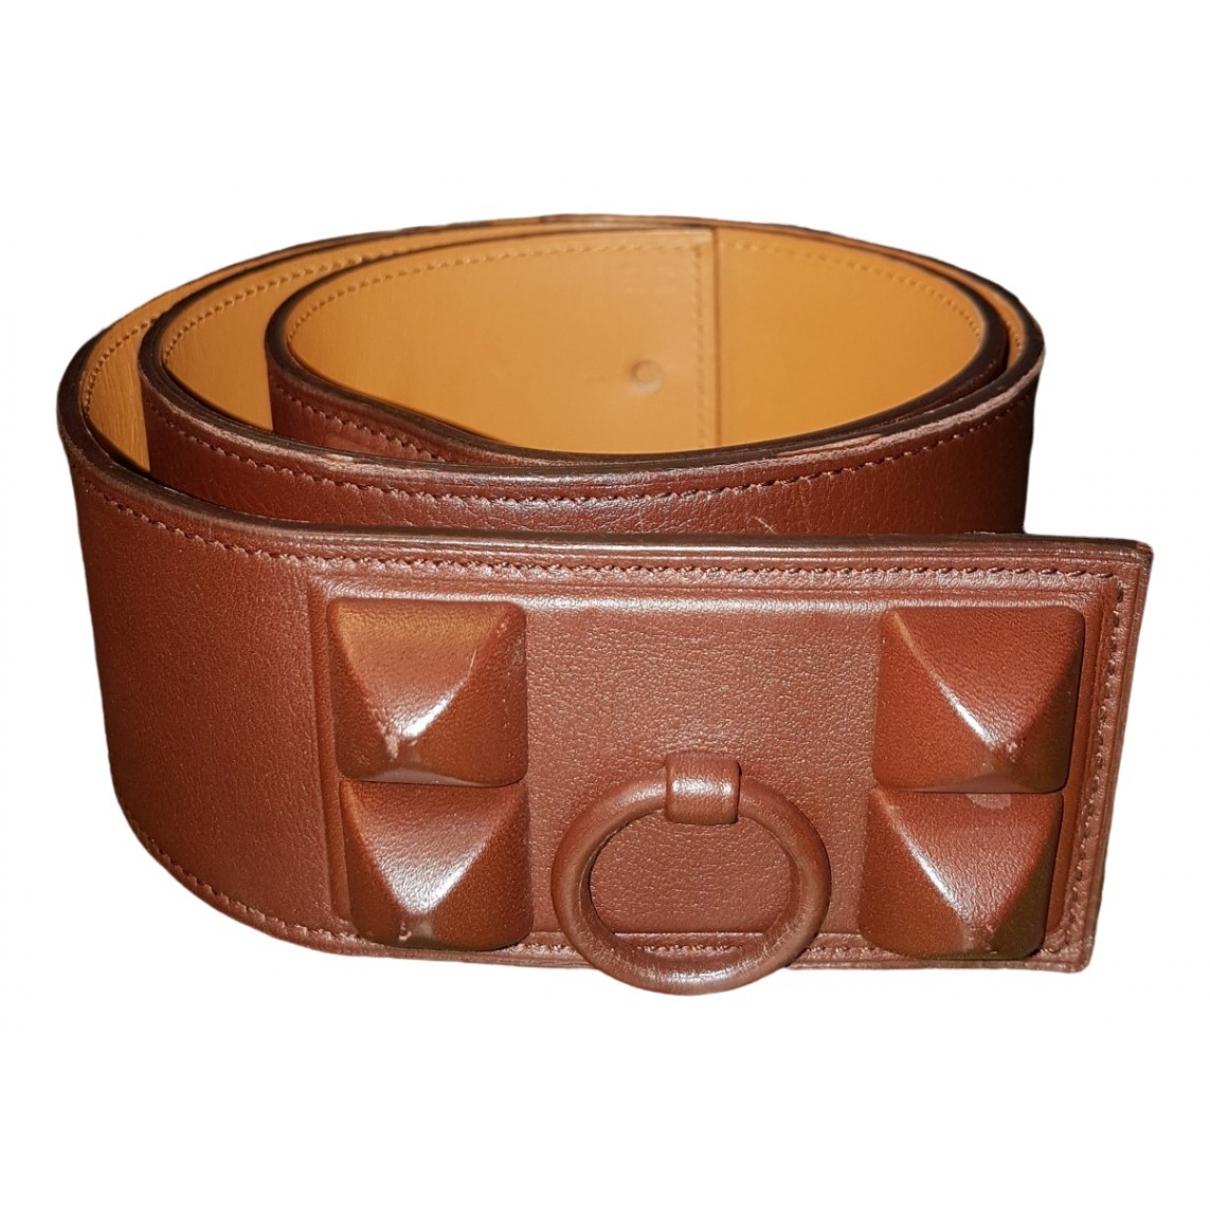 Hermès Collier de chien Brown Leather belt for Women 90 cm